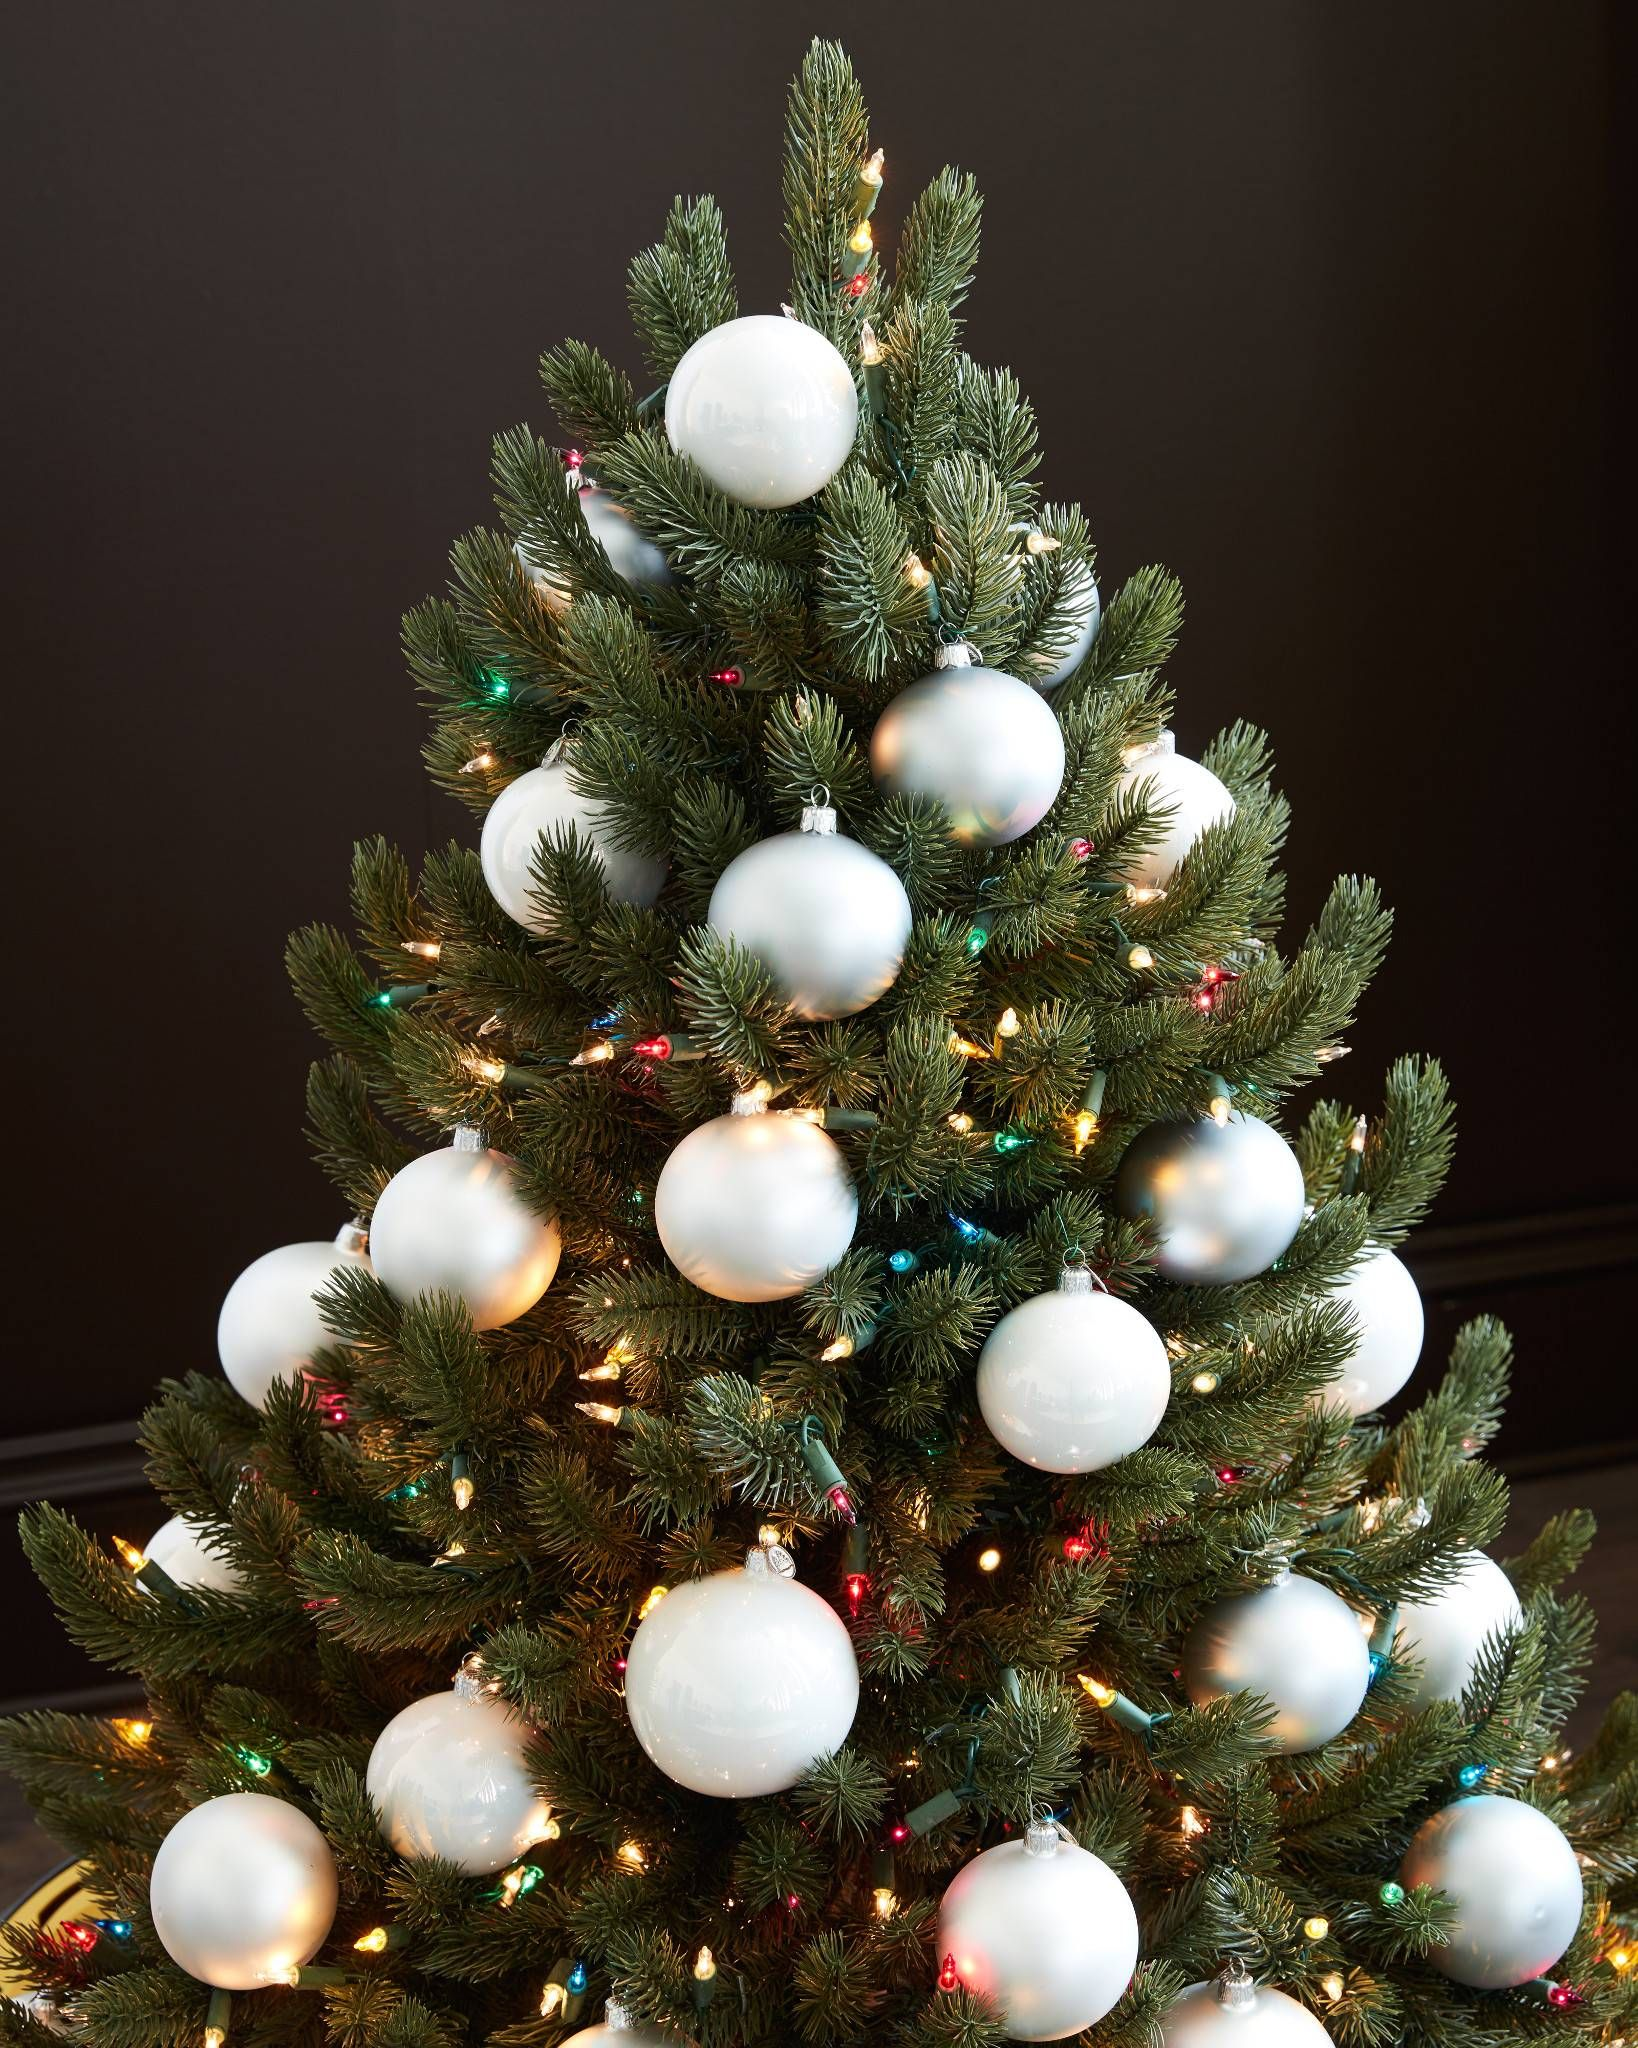 Bh Essentials Metallic Ornament Set White Christmas Trees Christmas Decorations Ornaments